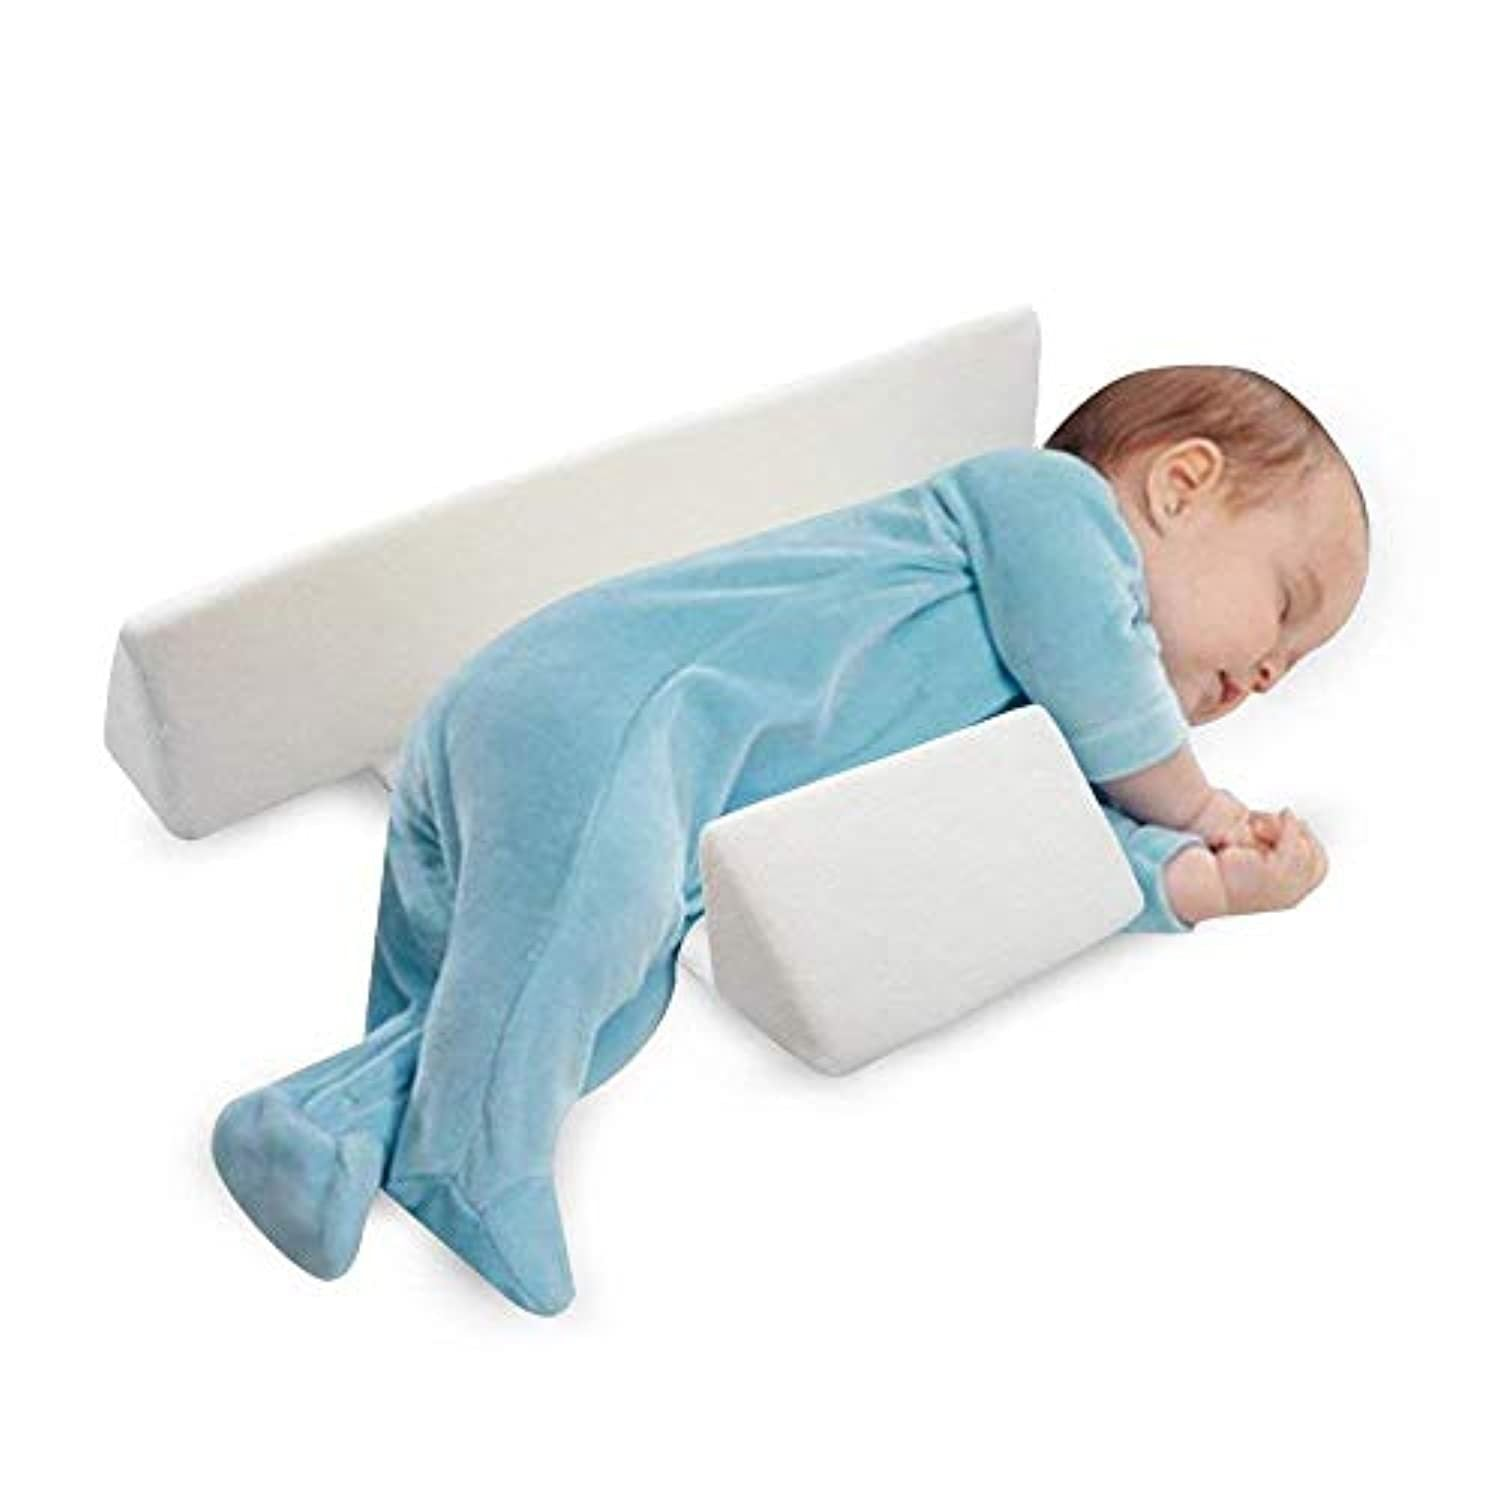 Baby Sleep Pillow Bed